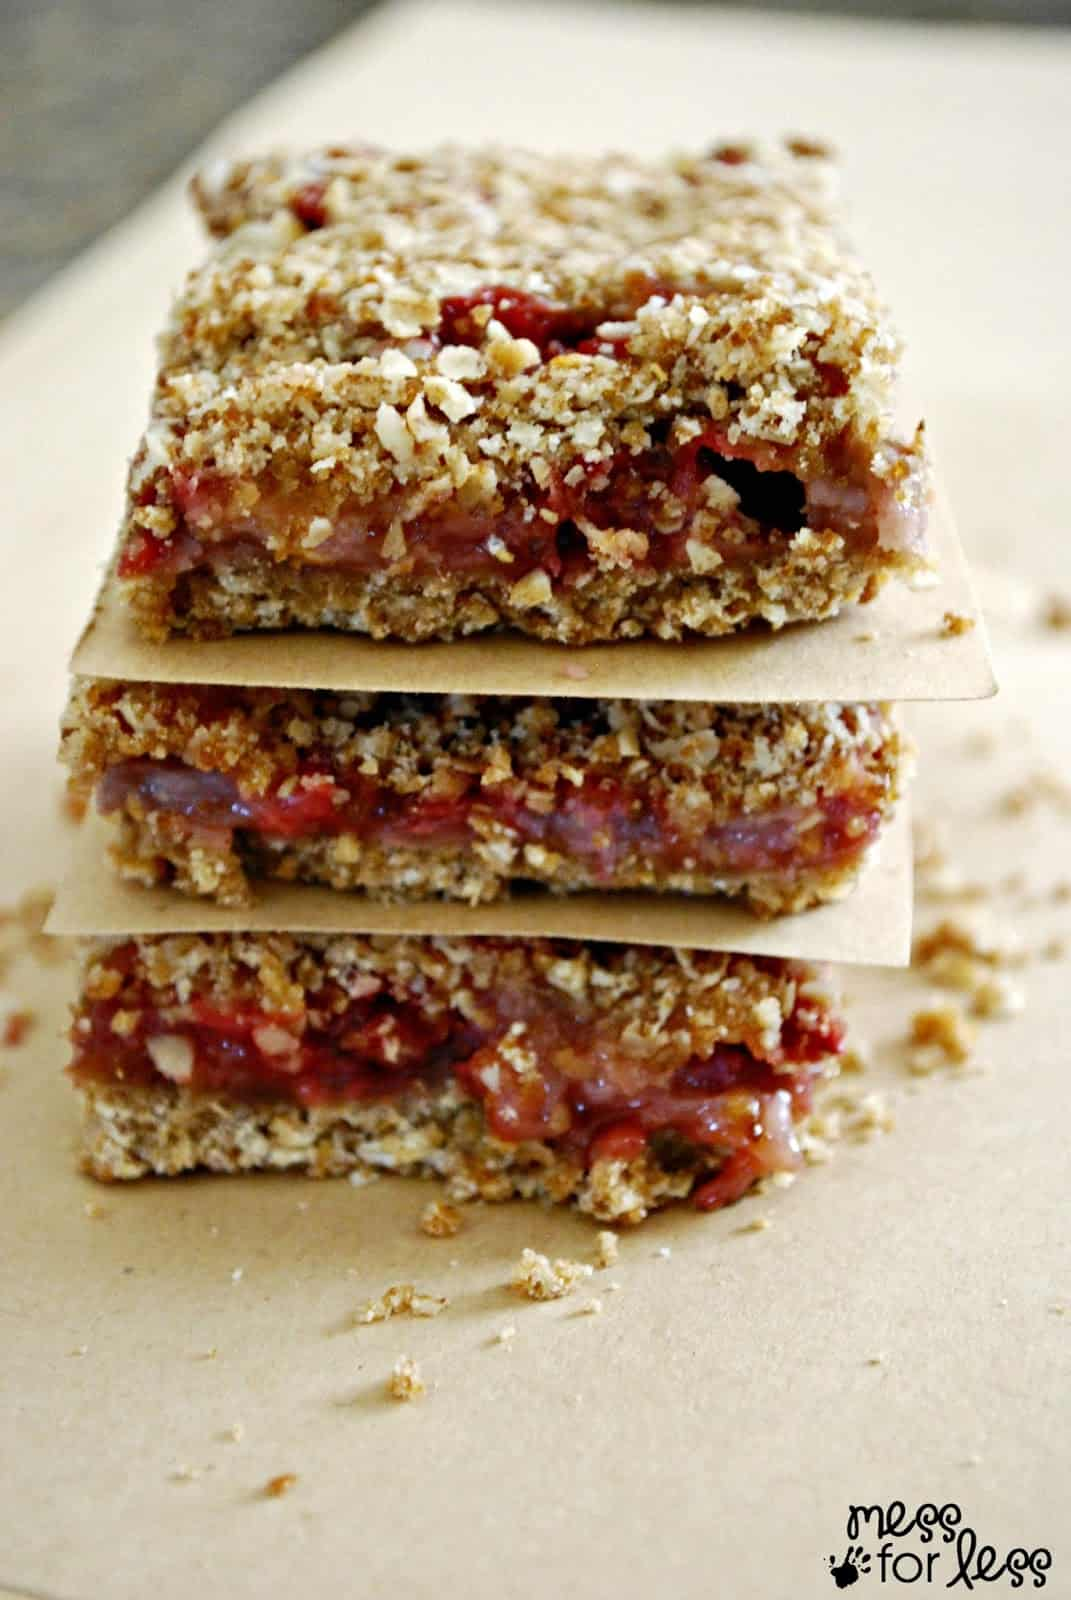 Strawberry Breakfast Bars Recipe - These will make your house smell amazing and leave your belly satisfied!